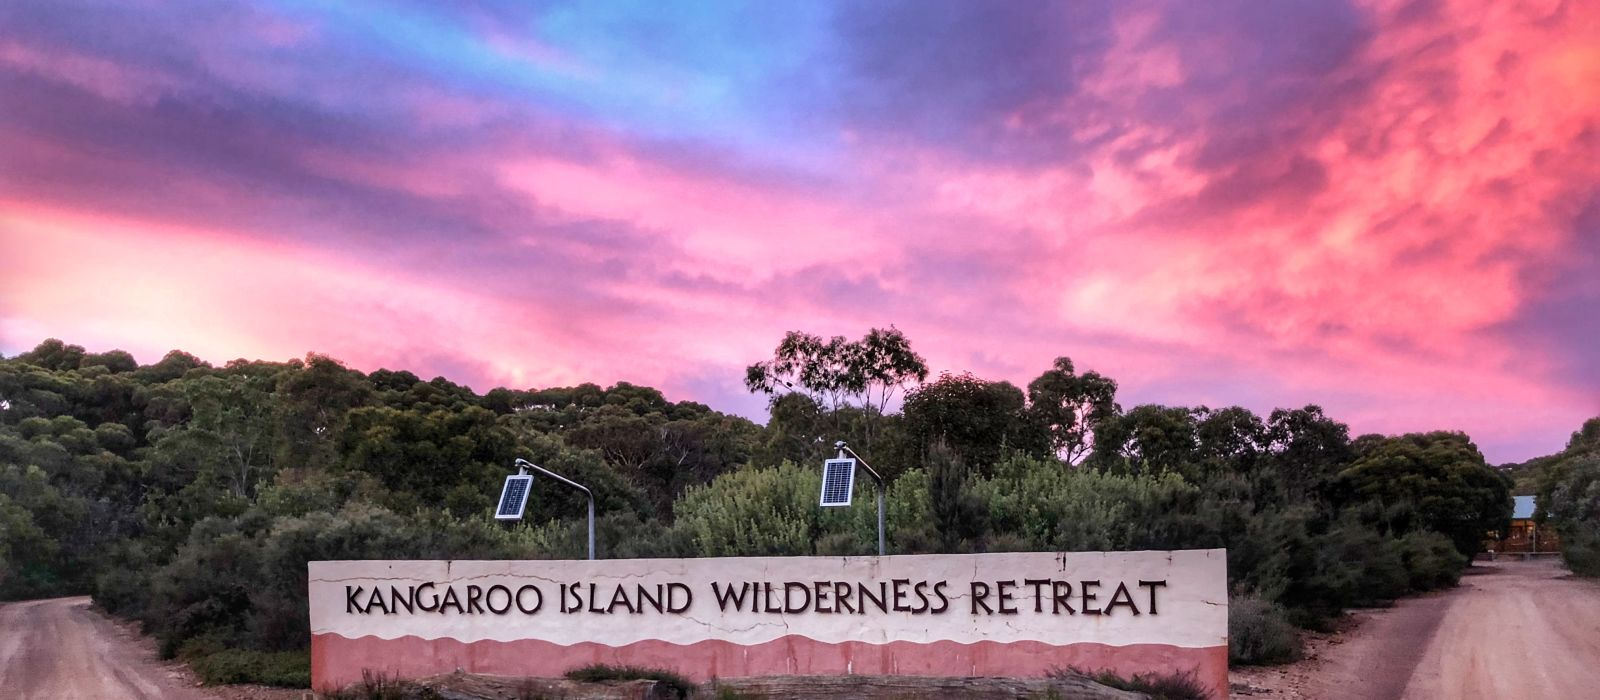 Hotel Kangaroo Island Wilderness Retreat Australien